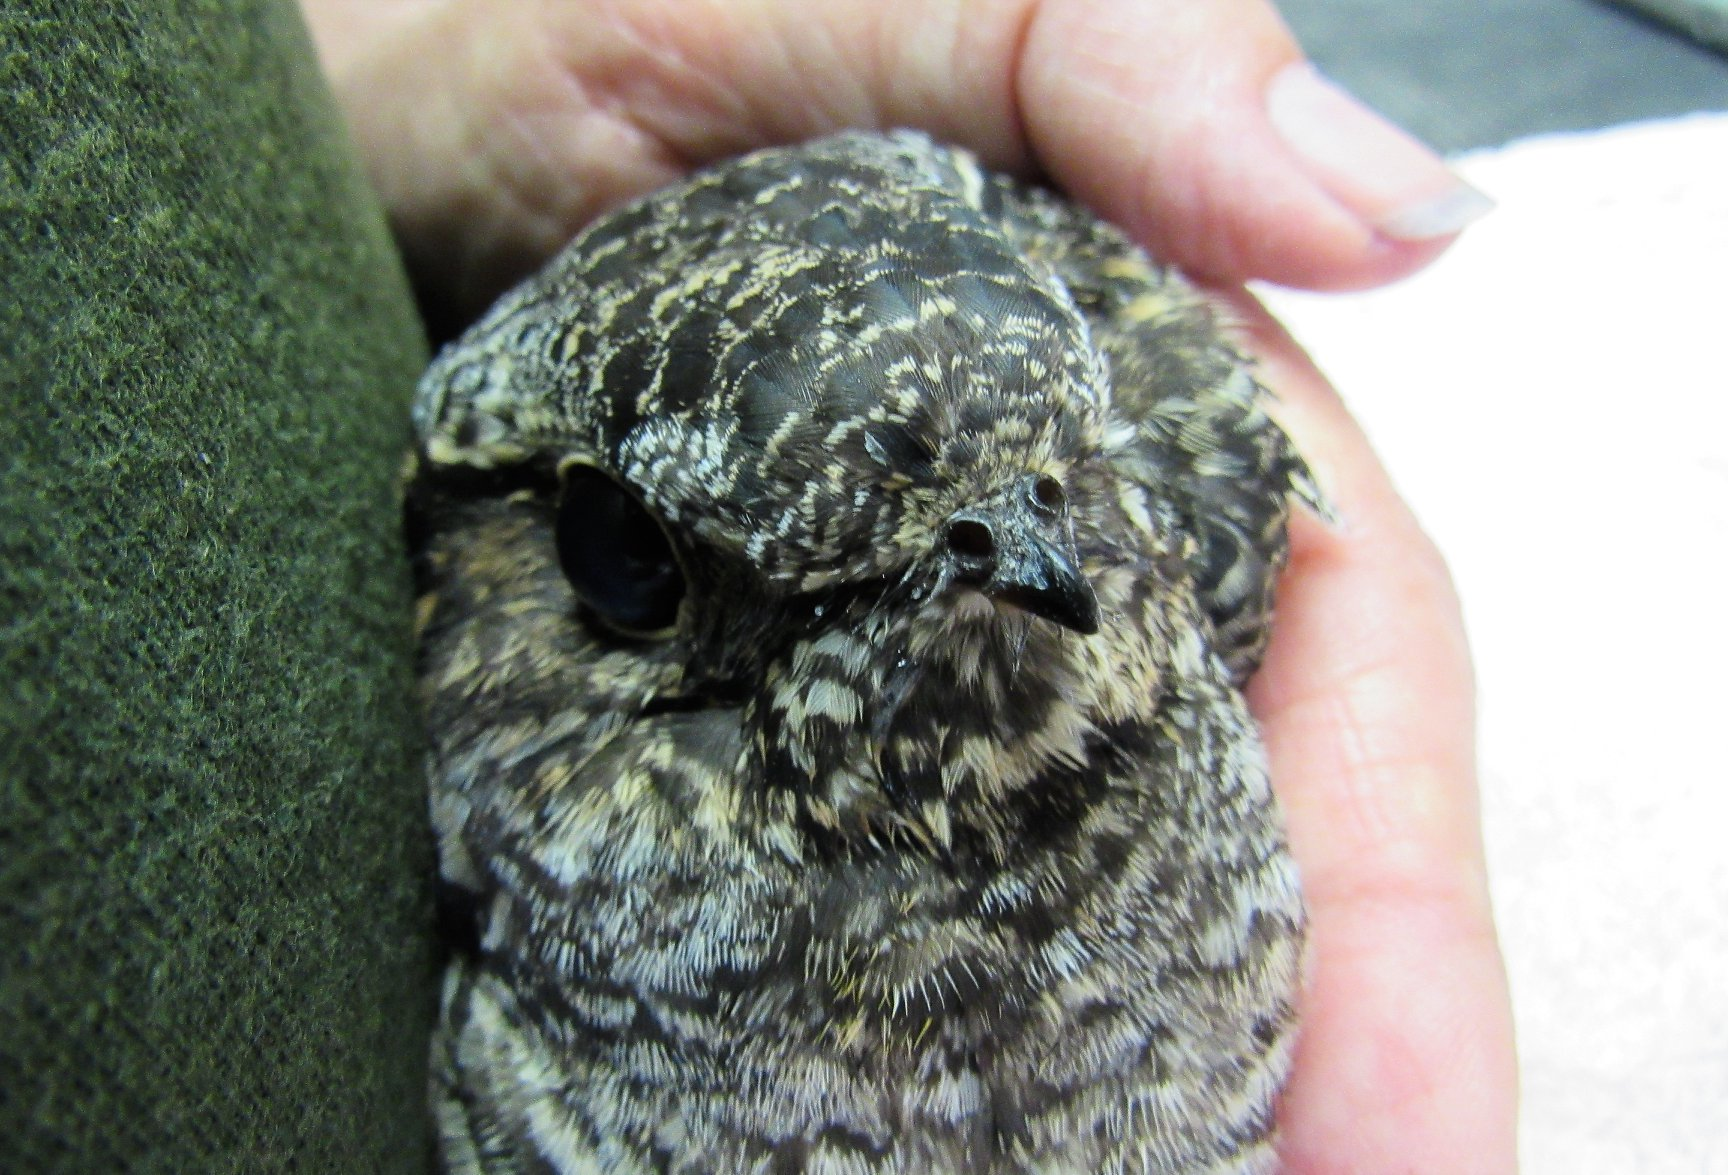 Nighthawks have a tiny beak that opens into a huge paper thin mouth that works as a funnel to capture insects while the nighthawk is in flight.